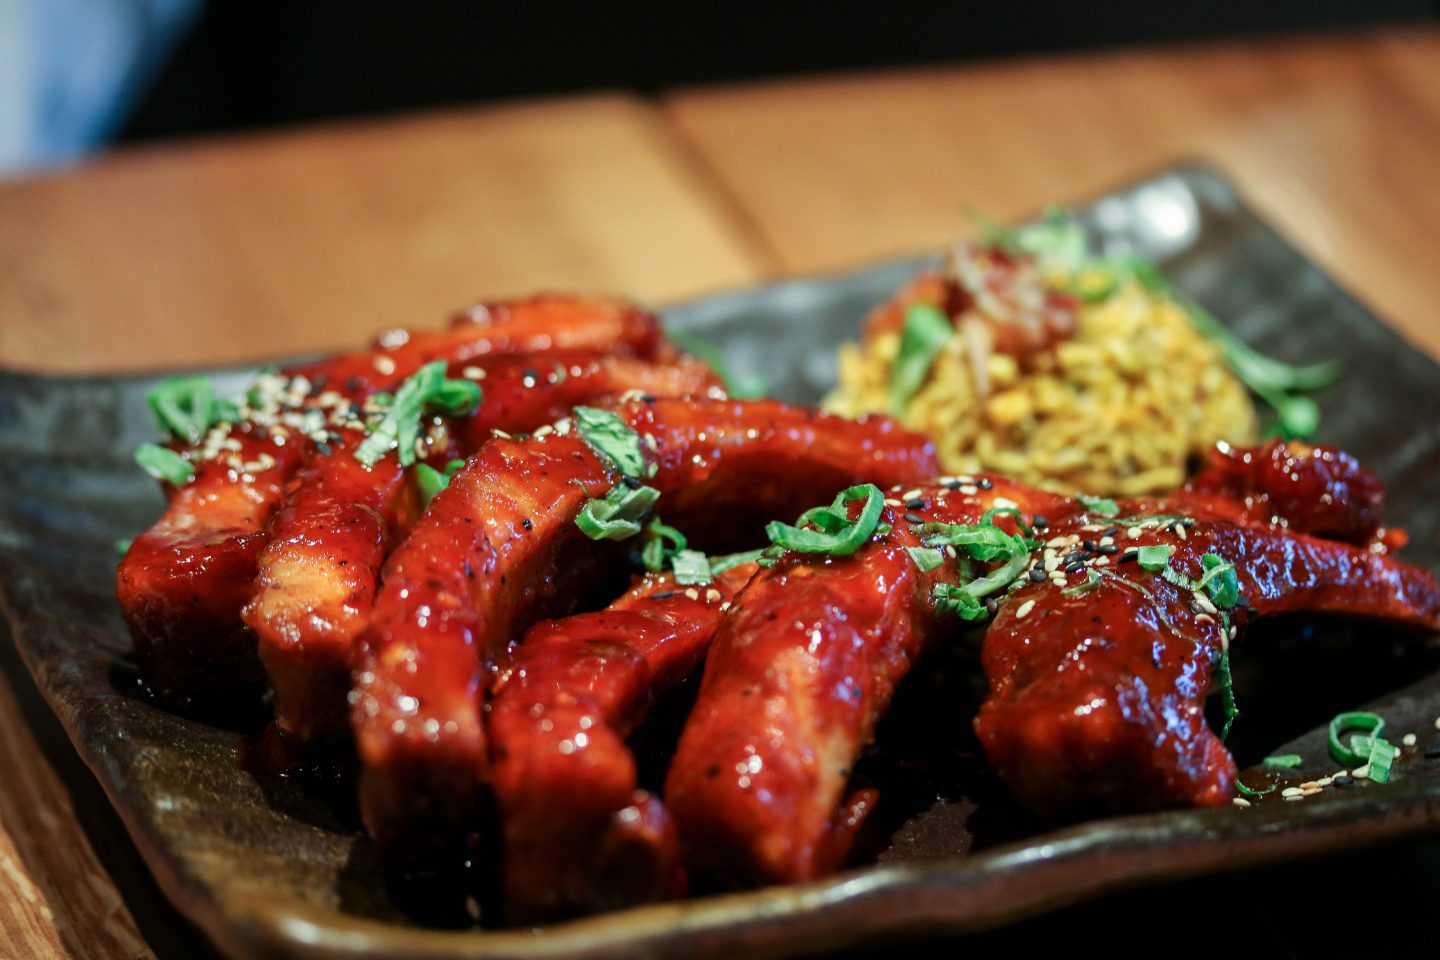 Himalayan Ribs with Bacon Bhel at Chai Ki, Canary Wharf - Lifestyle Enthusiast Blog Recovery Brunch Review